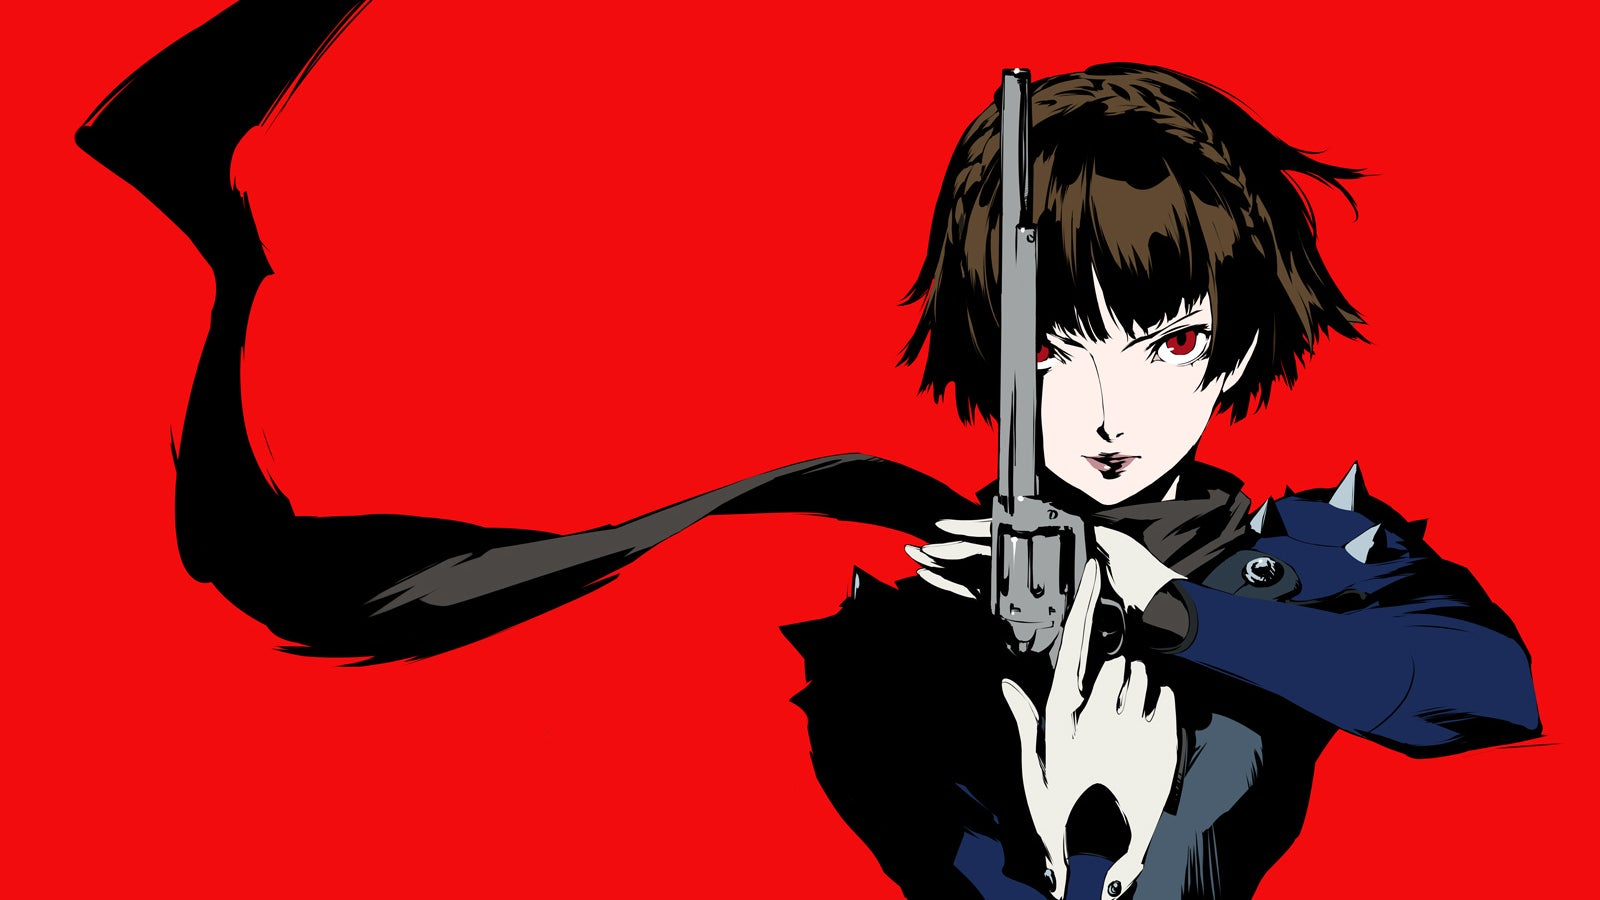 Fine Art More From Persona 5 To Steal Your Heart Kotaku Australia Take Has A Very Nice Book And Weve Featured Images Its Development On The Site Already But Theres Now Also Range Of Prints Available For